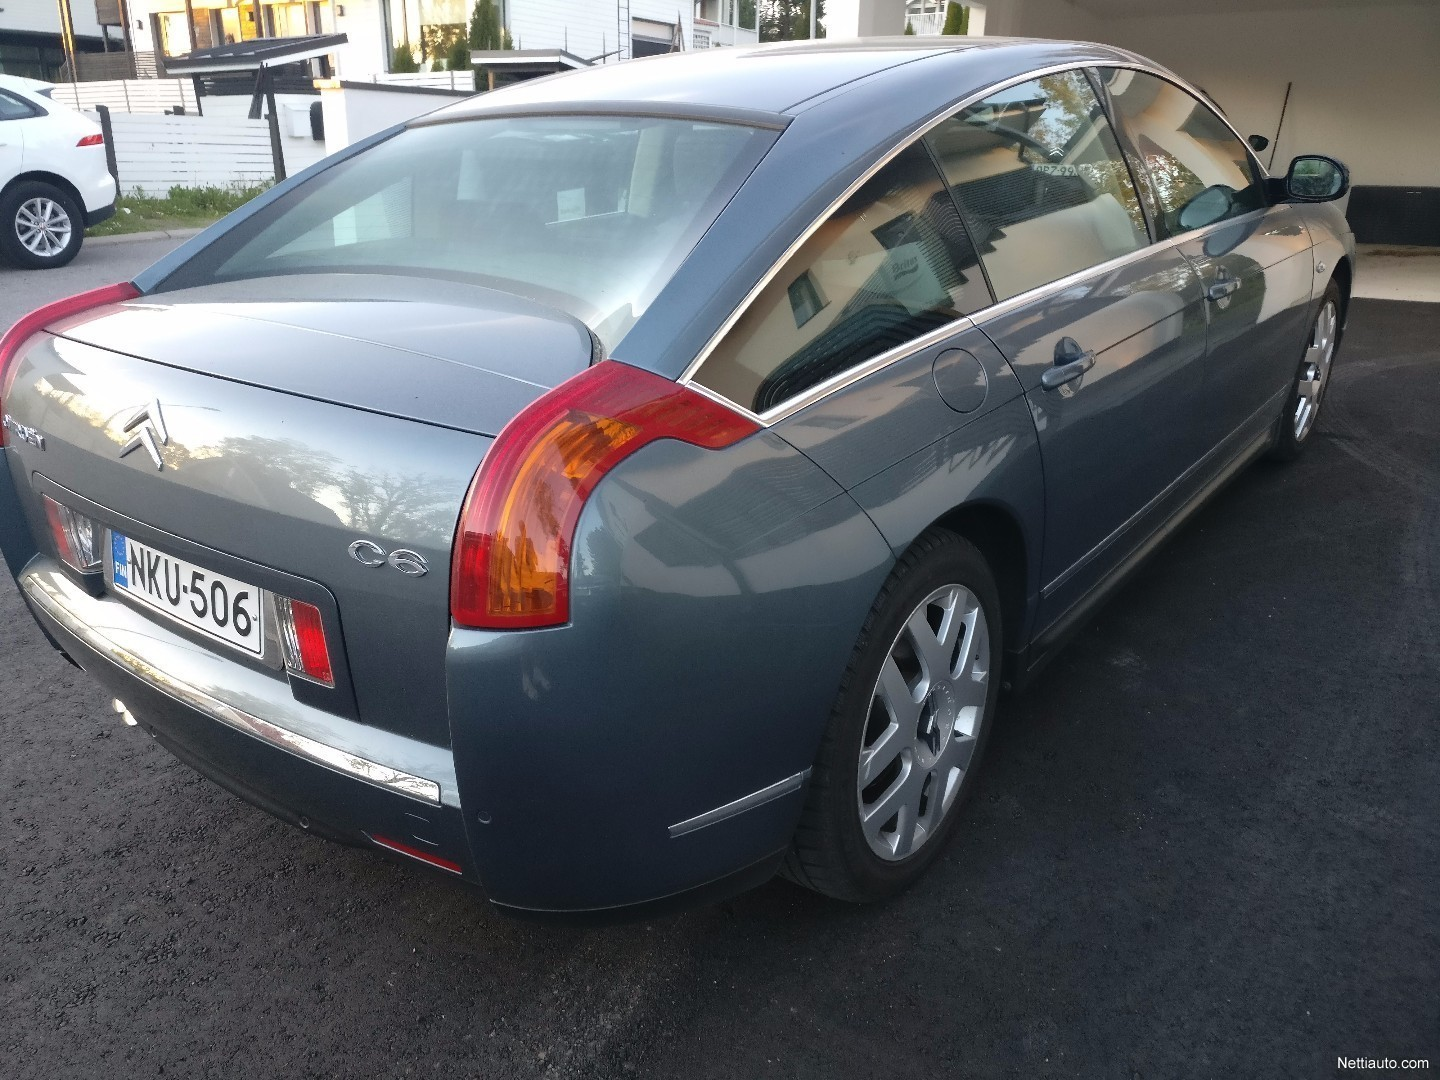 citroen c6 v6 exclusive autom sedan 2006 used vehicle nettiauto. Black Bedroom Furniture Sets. Home Design Ideas